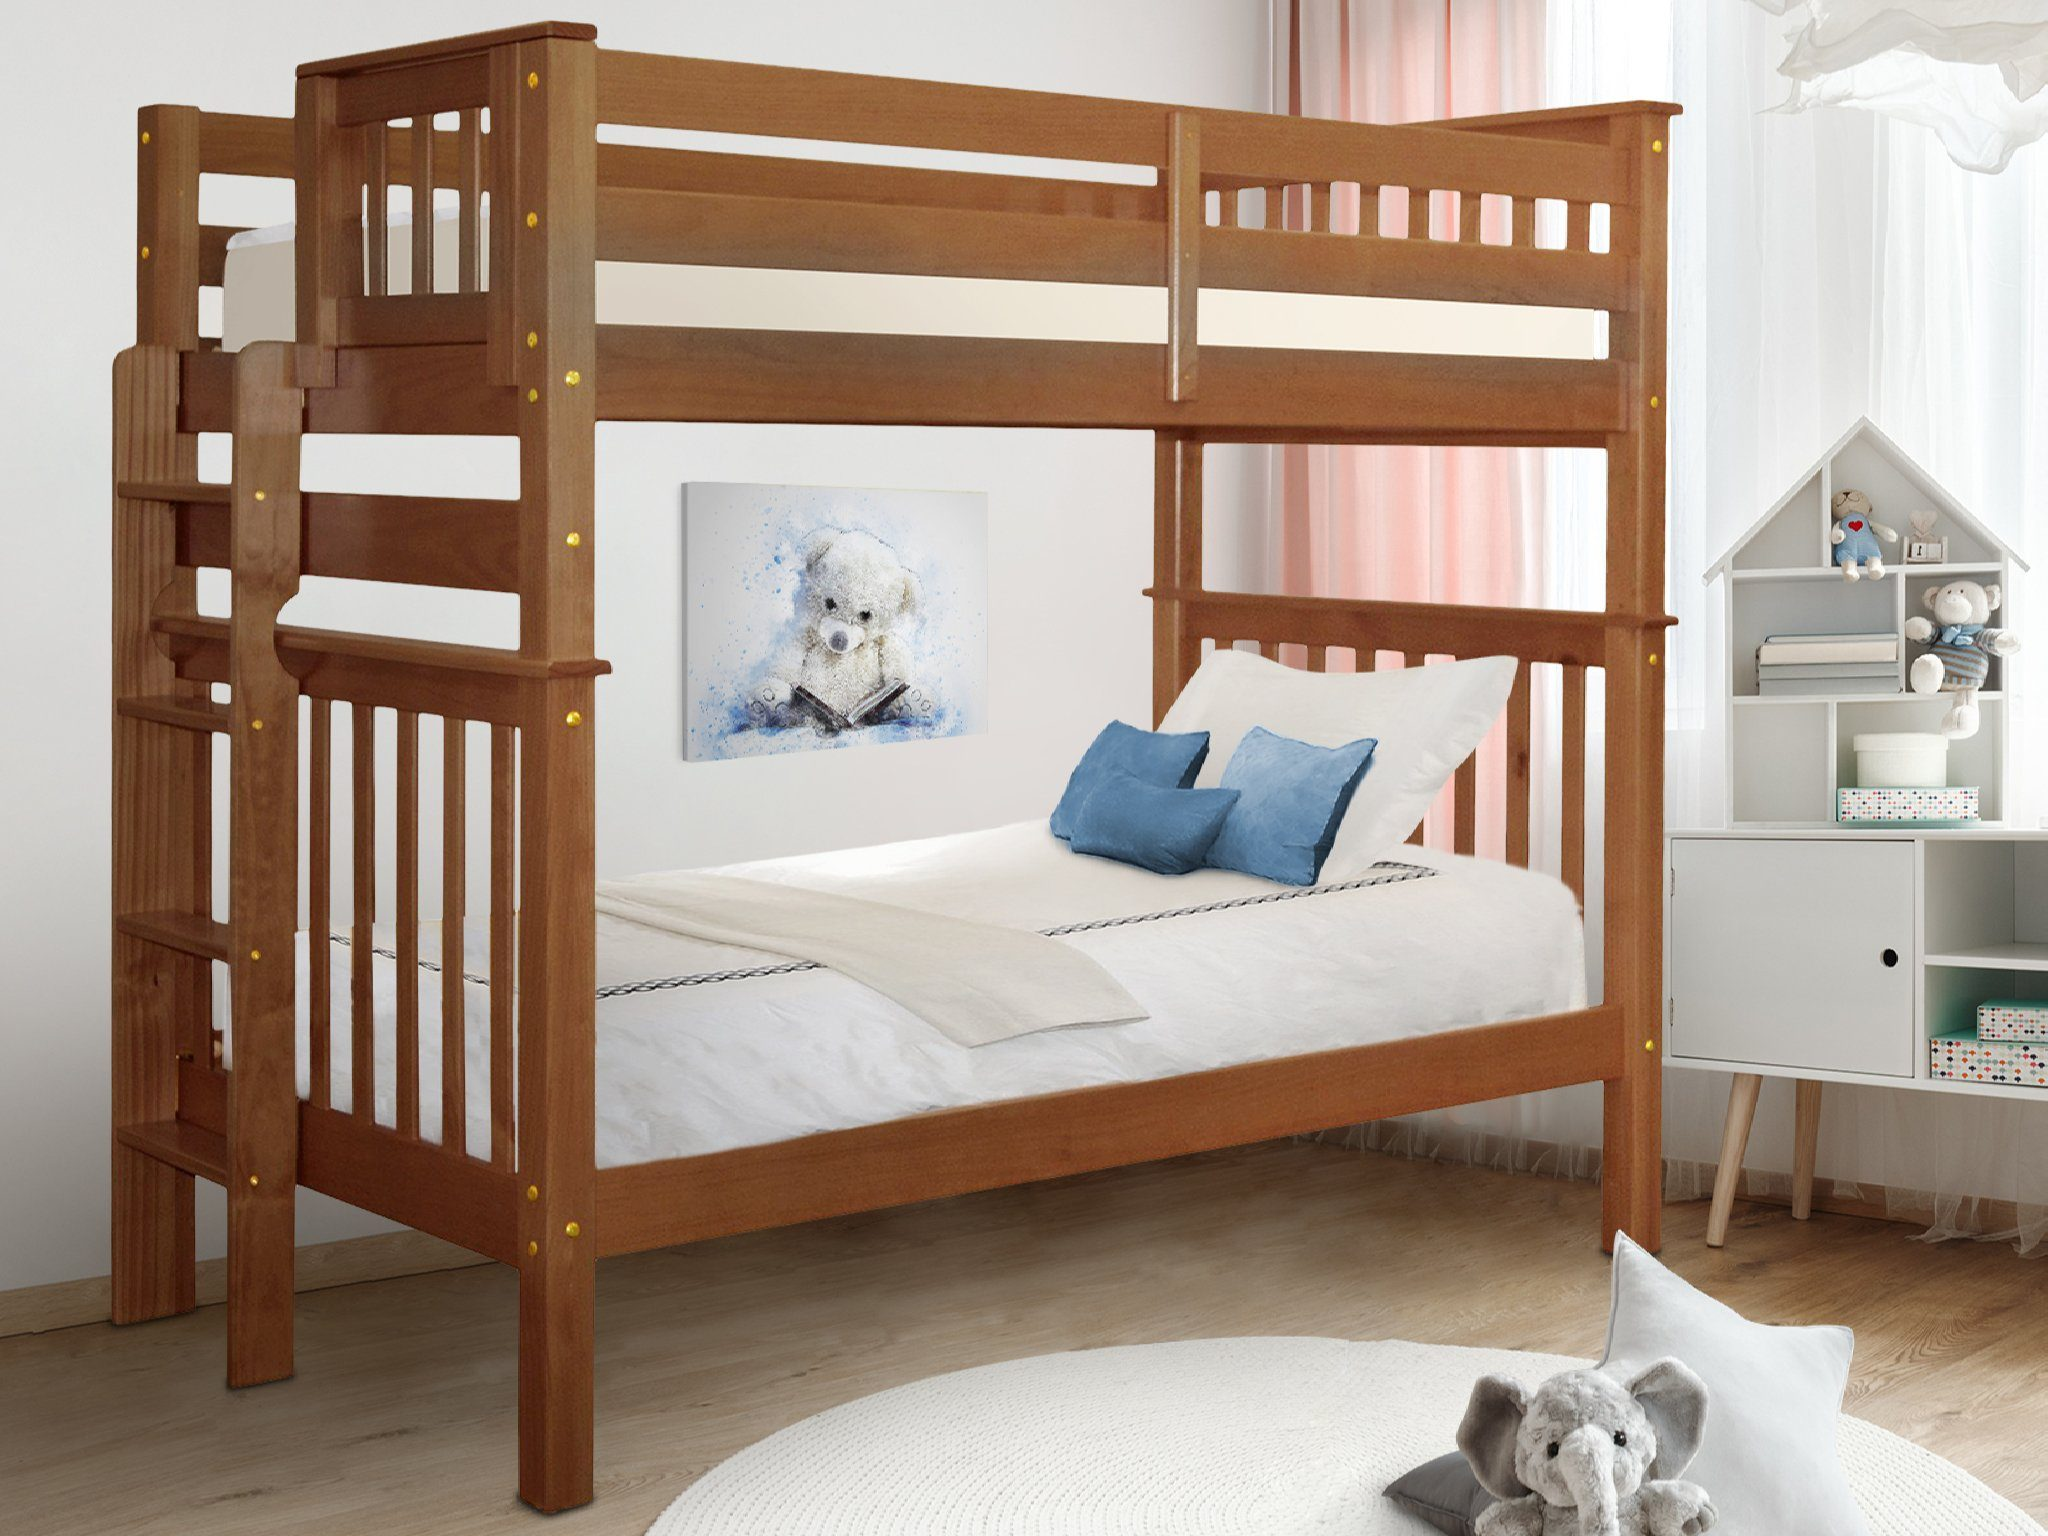 bedz king tall bunk beds twin over twin mission style with end ladder espresso